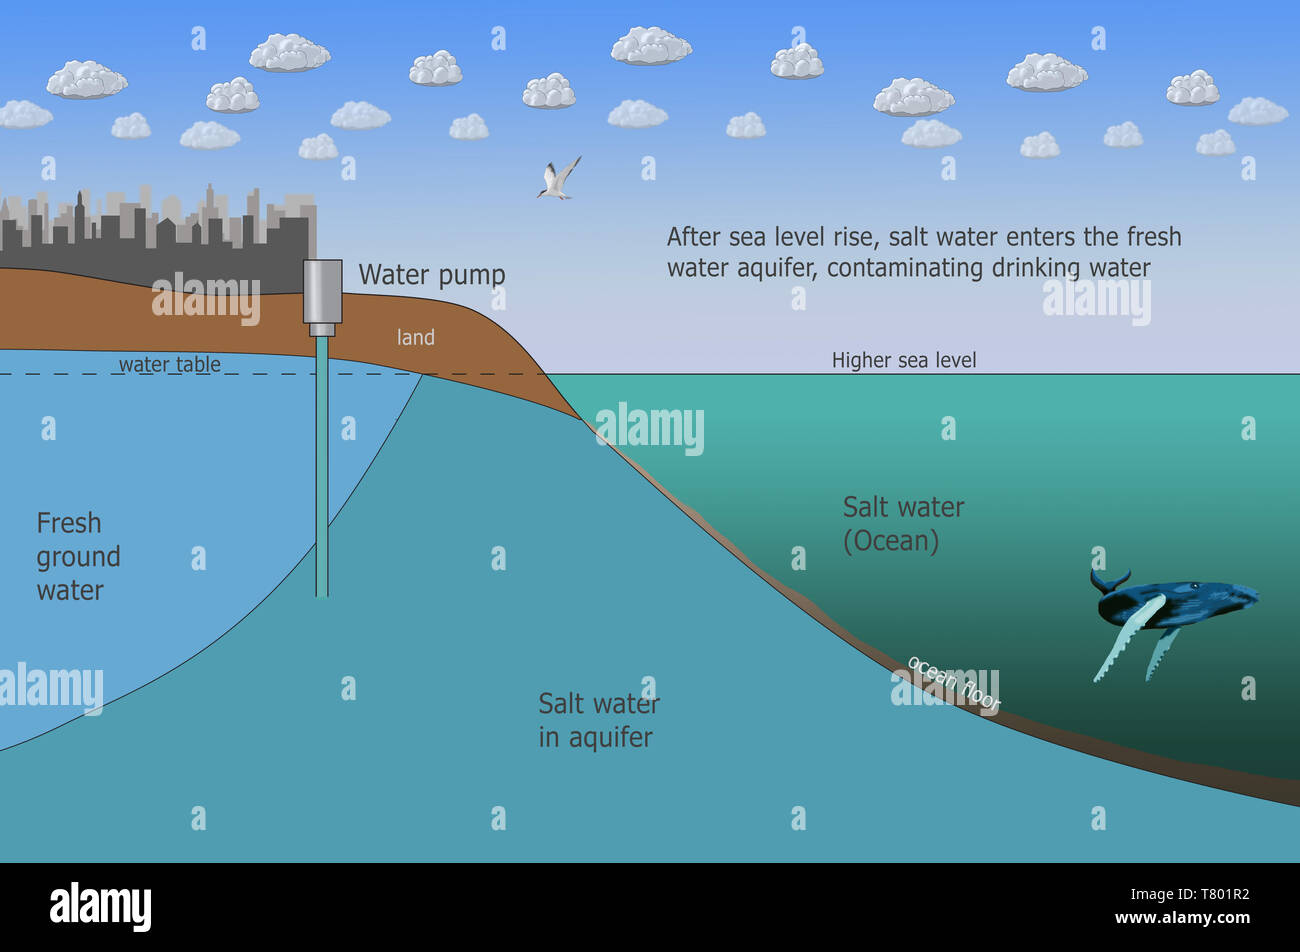 Salt Water Intrusion, Higher Sea Level, Climate Change, Illustration - Stock Image